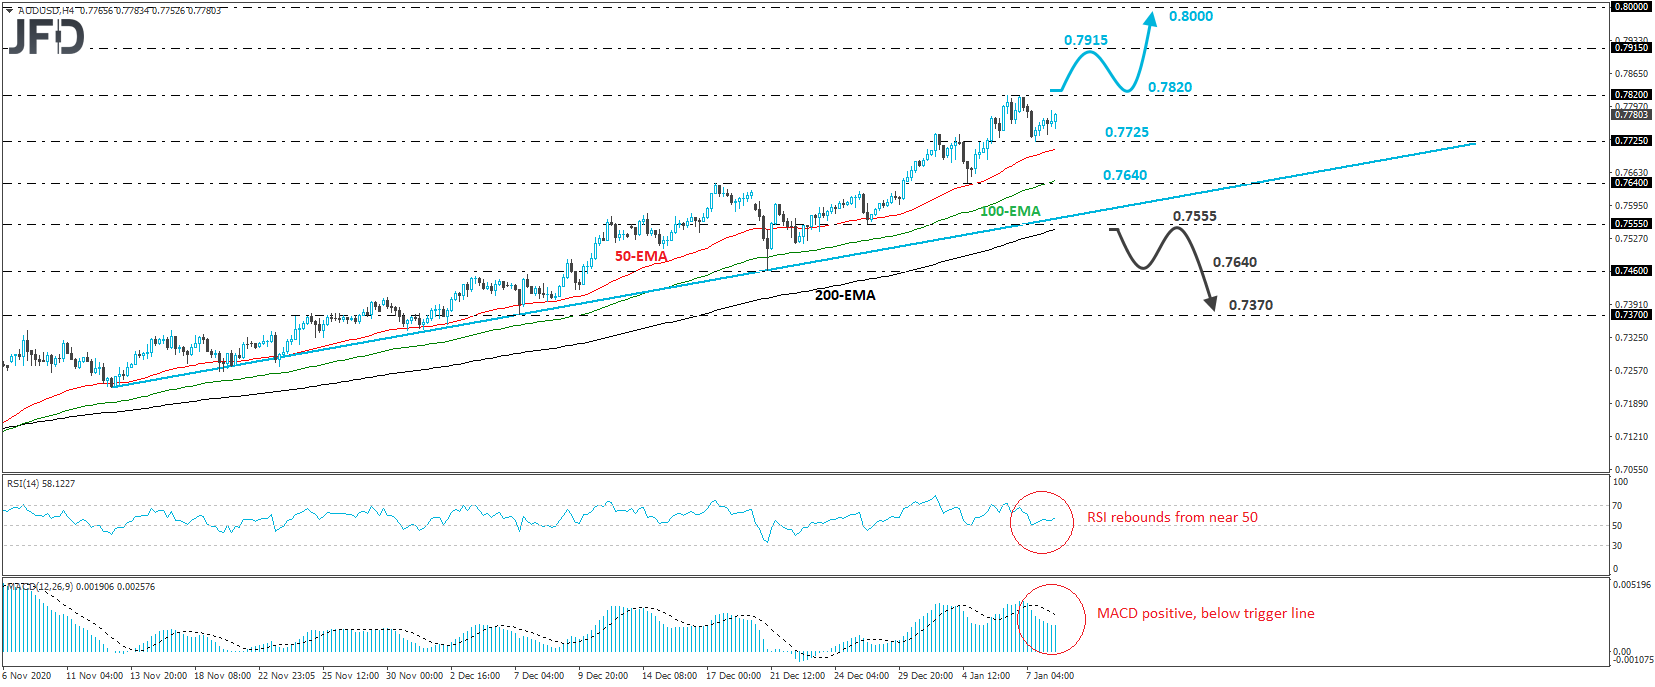 AUD/USD 4-hour chart technical analysis